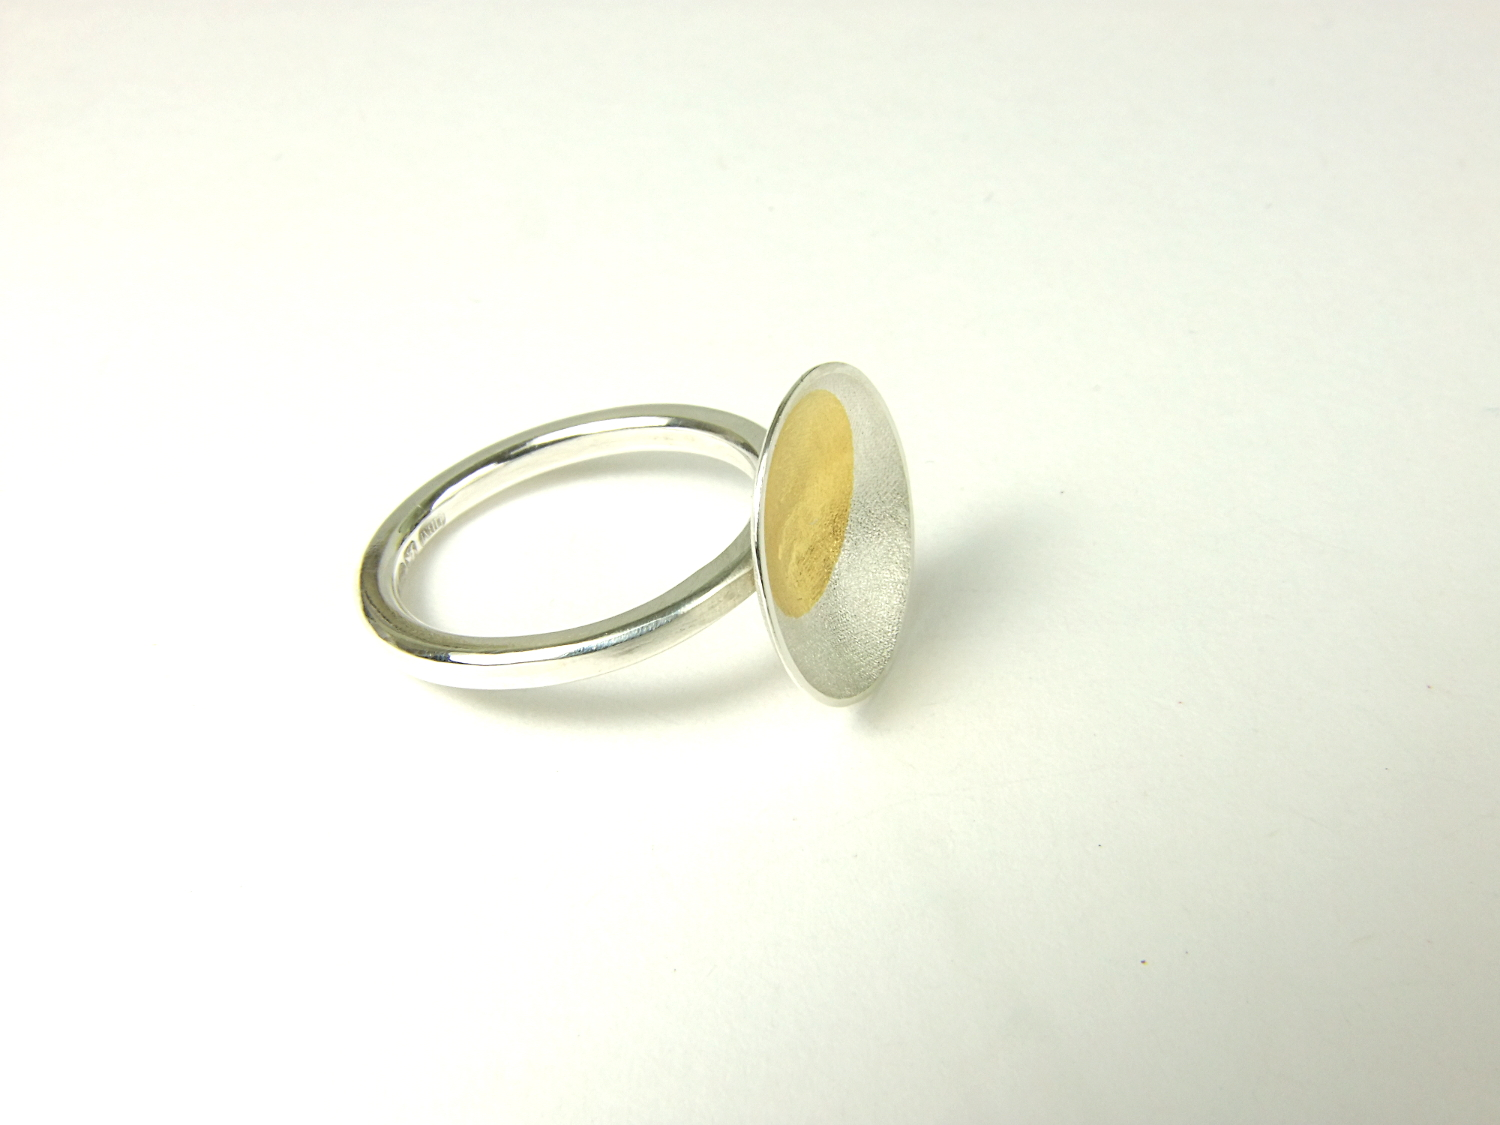 Side view of Argentium silver ring with shallow textured oval with a round Keum-Boo detail in 22 ct yellow gold. (HBM089B)